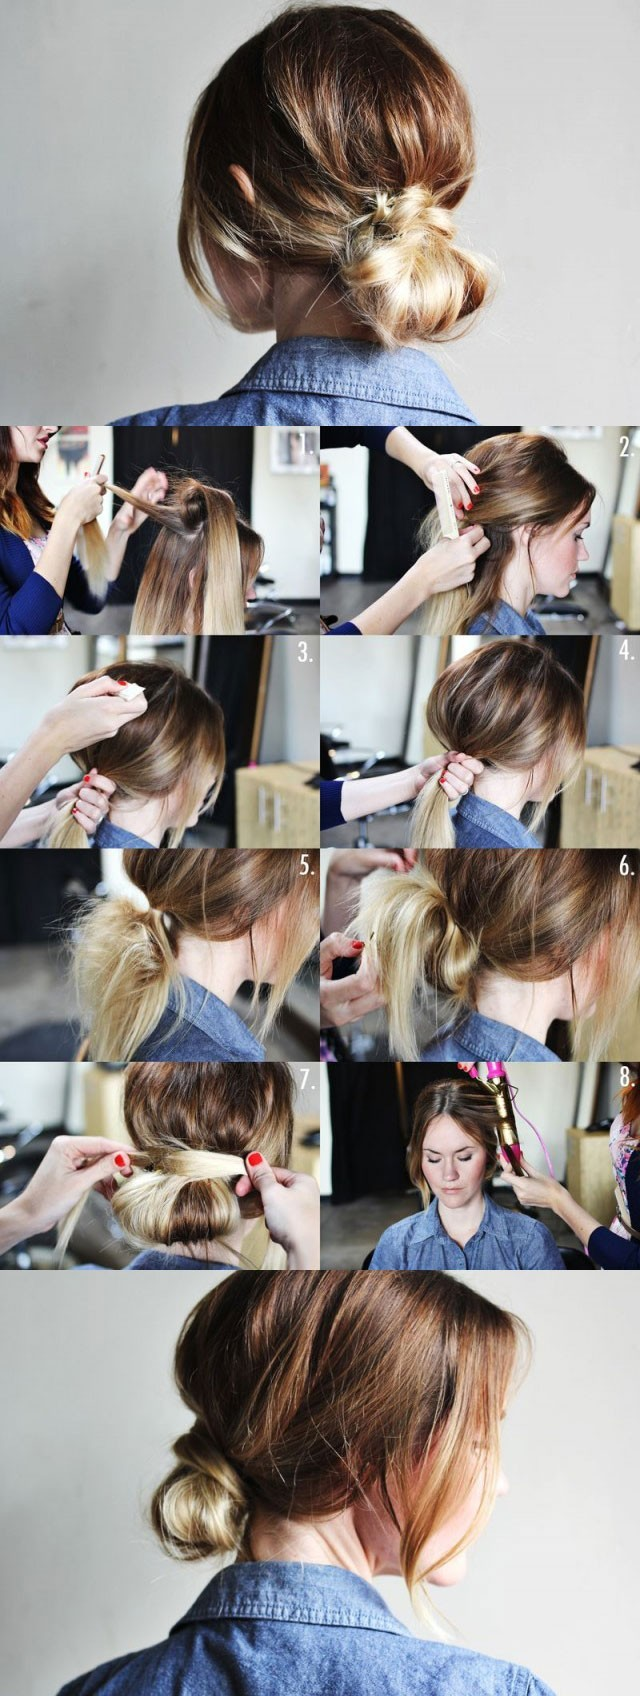 Groovy 15 Cute Hairstyles Step By Step Hairstyles For Long Hair Hairstyle Inspiration Daily Dogsangcom